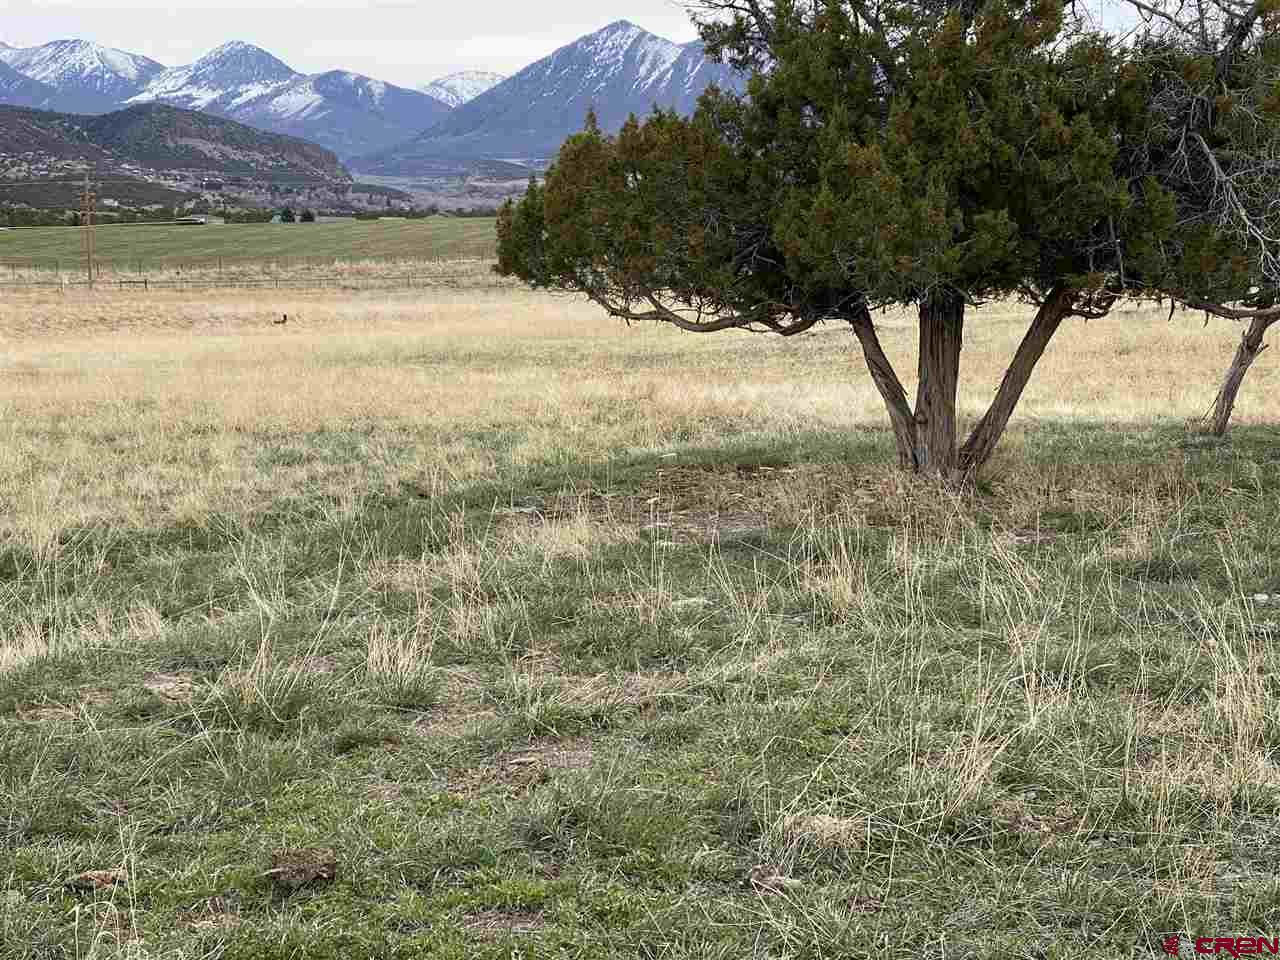 Acreage with good fencing completely surrounding property. Water storage tank on site, water tap is paid, but not installed and comes with the property. Run off irrigation water is sometimes available.  Million dollar views of the West Elk Range of the Colorado Rocky Mountains. Tons of great fishing, and recreation all around.  The deer in the photo are not professional models, they are just passing through.  Come check out this affordable property with fantastic views and see for yourself.  The pasture is nice and the land has a gentle slope for easy building and livestock raising.